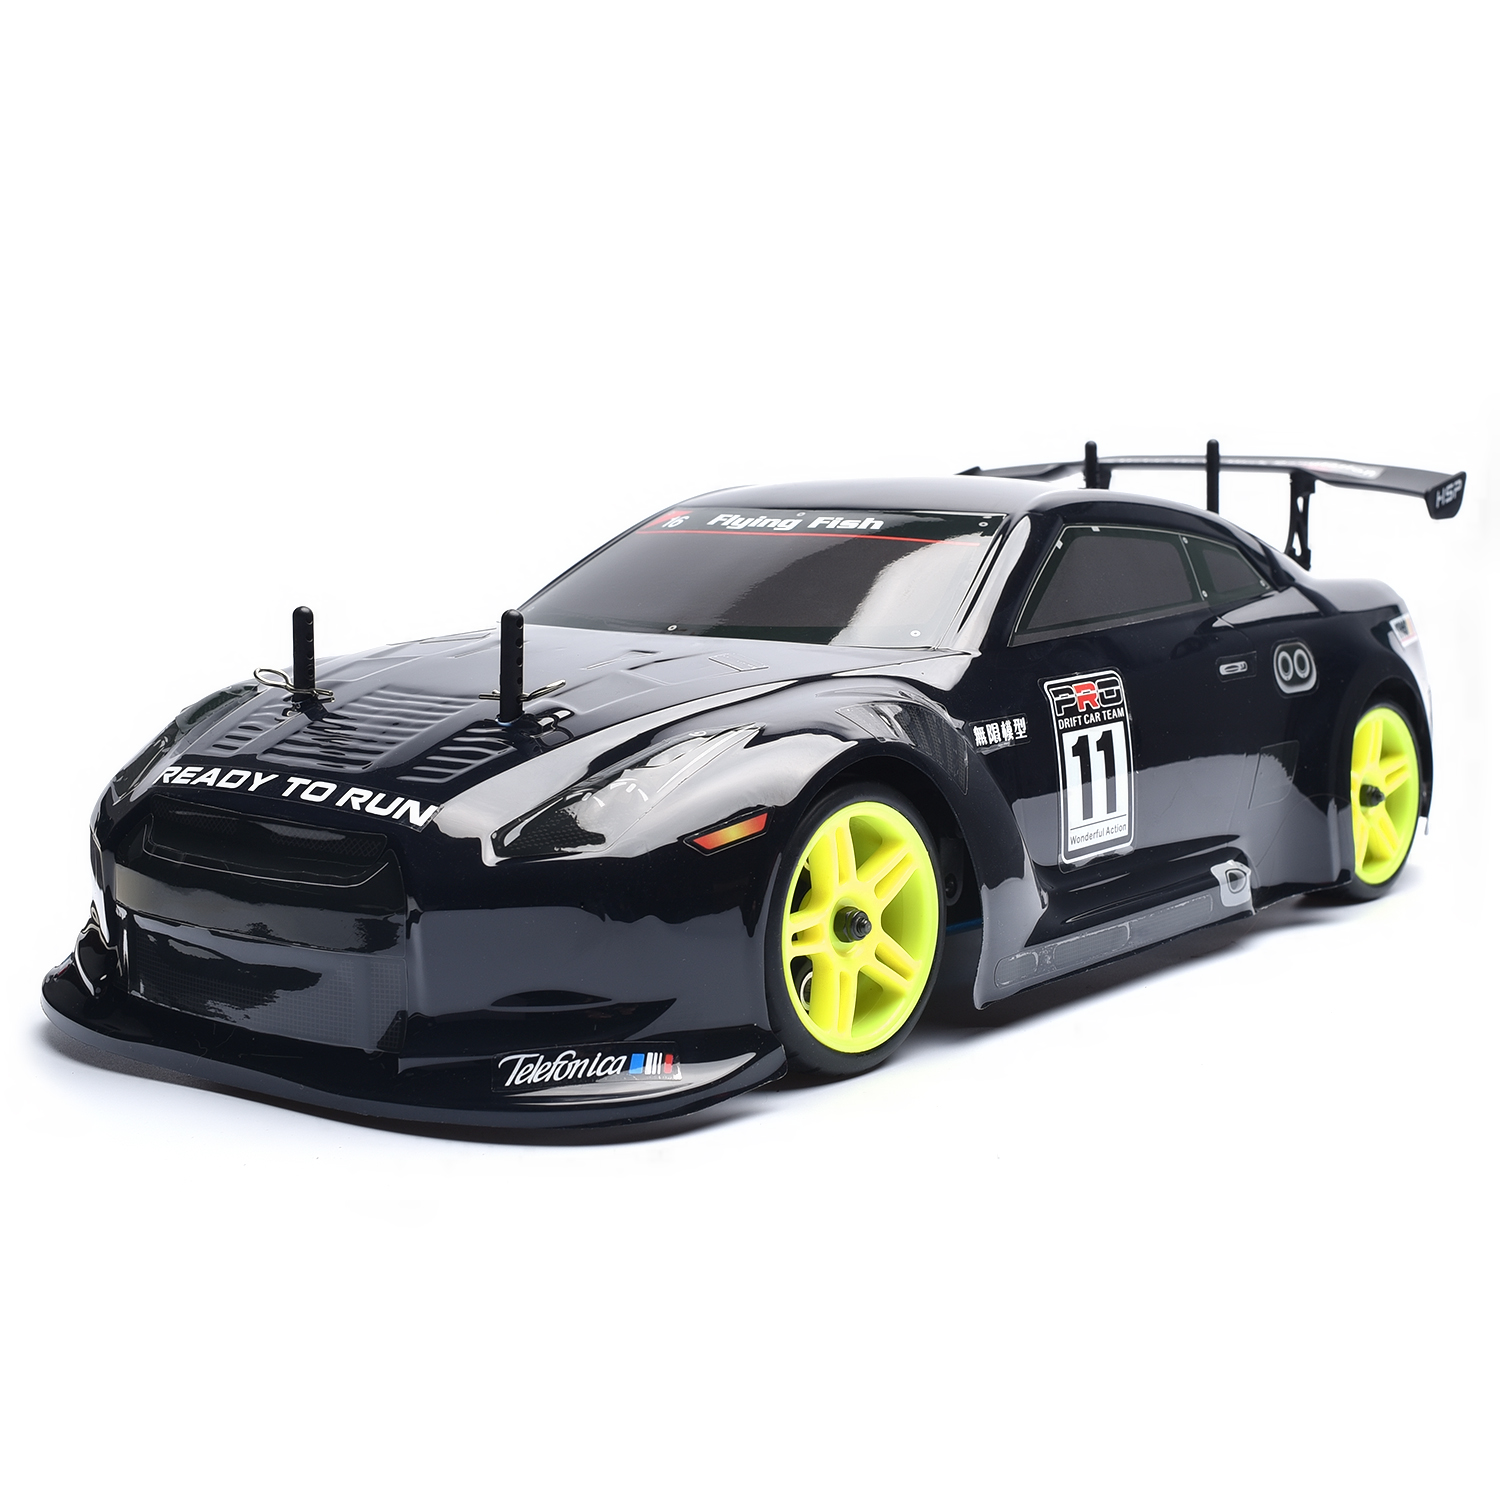 HSP 1:10 Scale Models Gas 4wd Rc Car High Speed Off Road